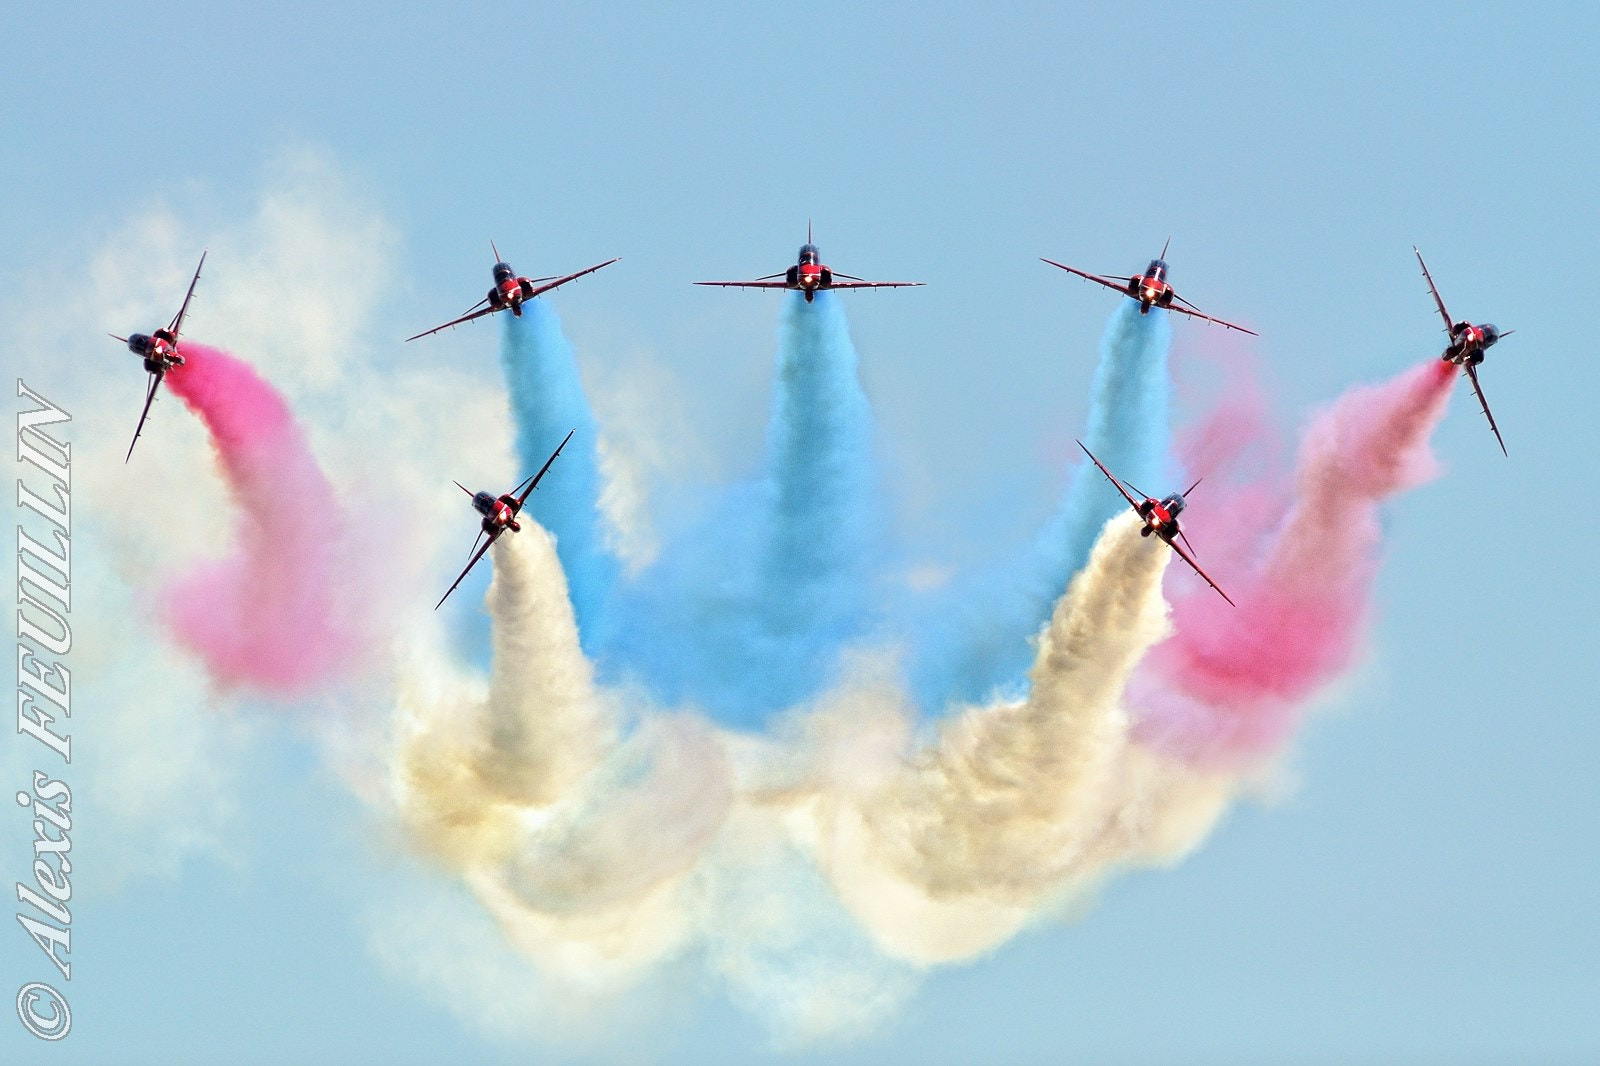 Photograph Red Arrows by Alexis FEUILLIN on 500px